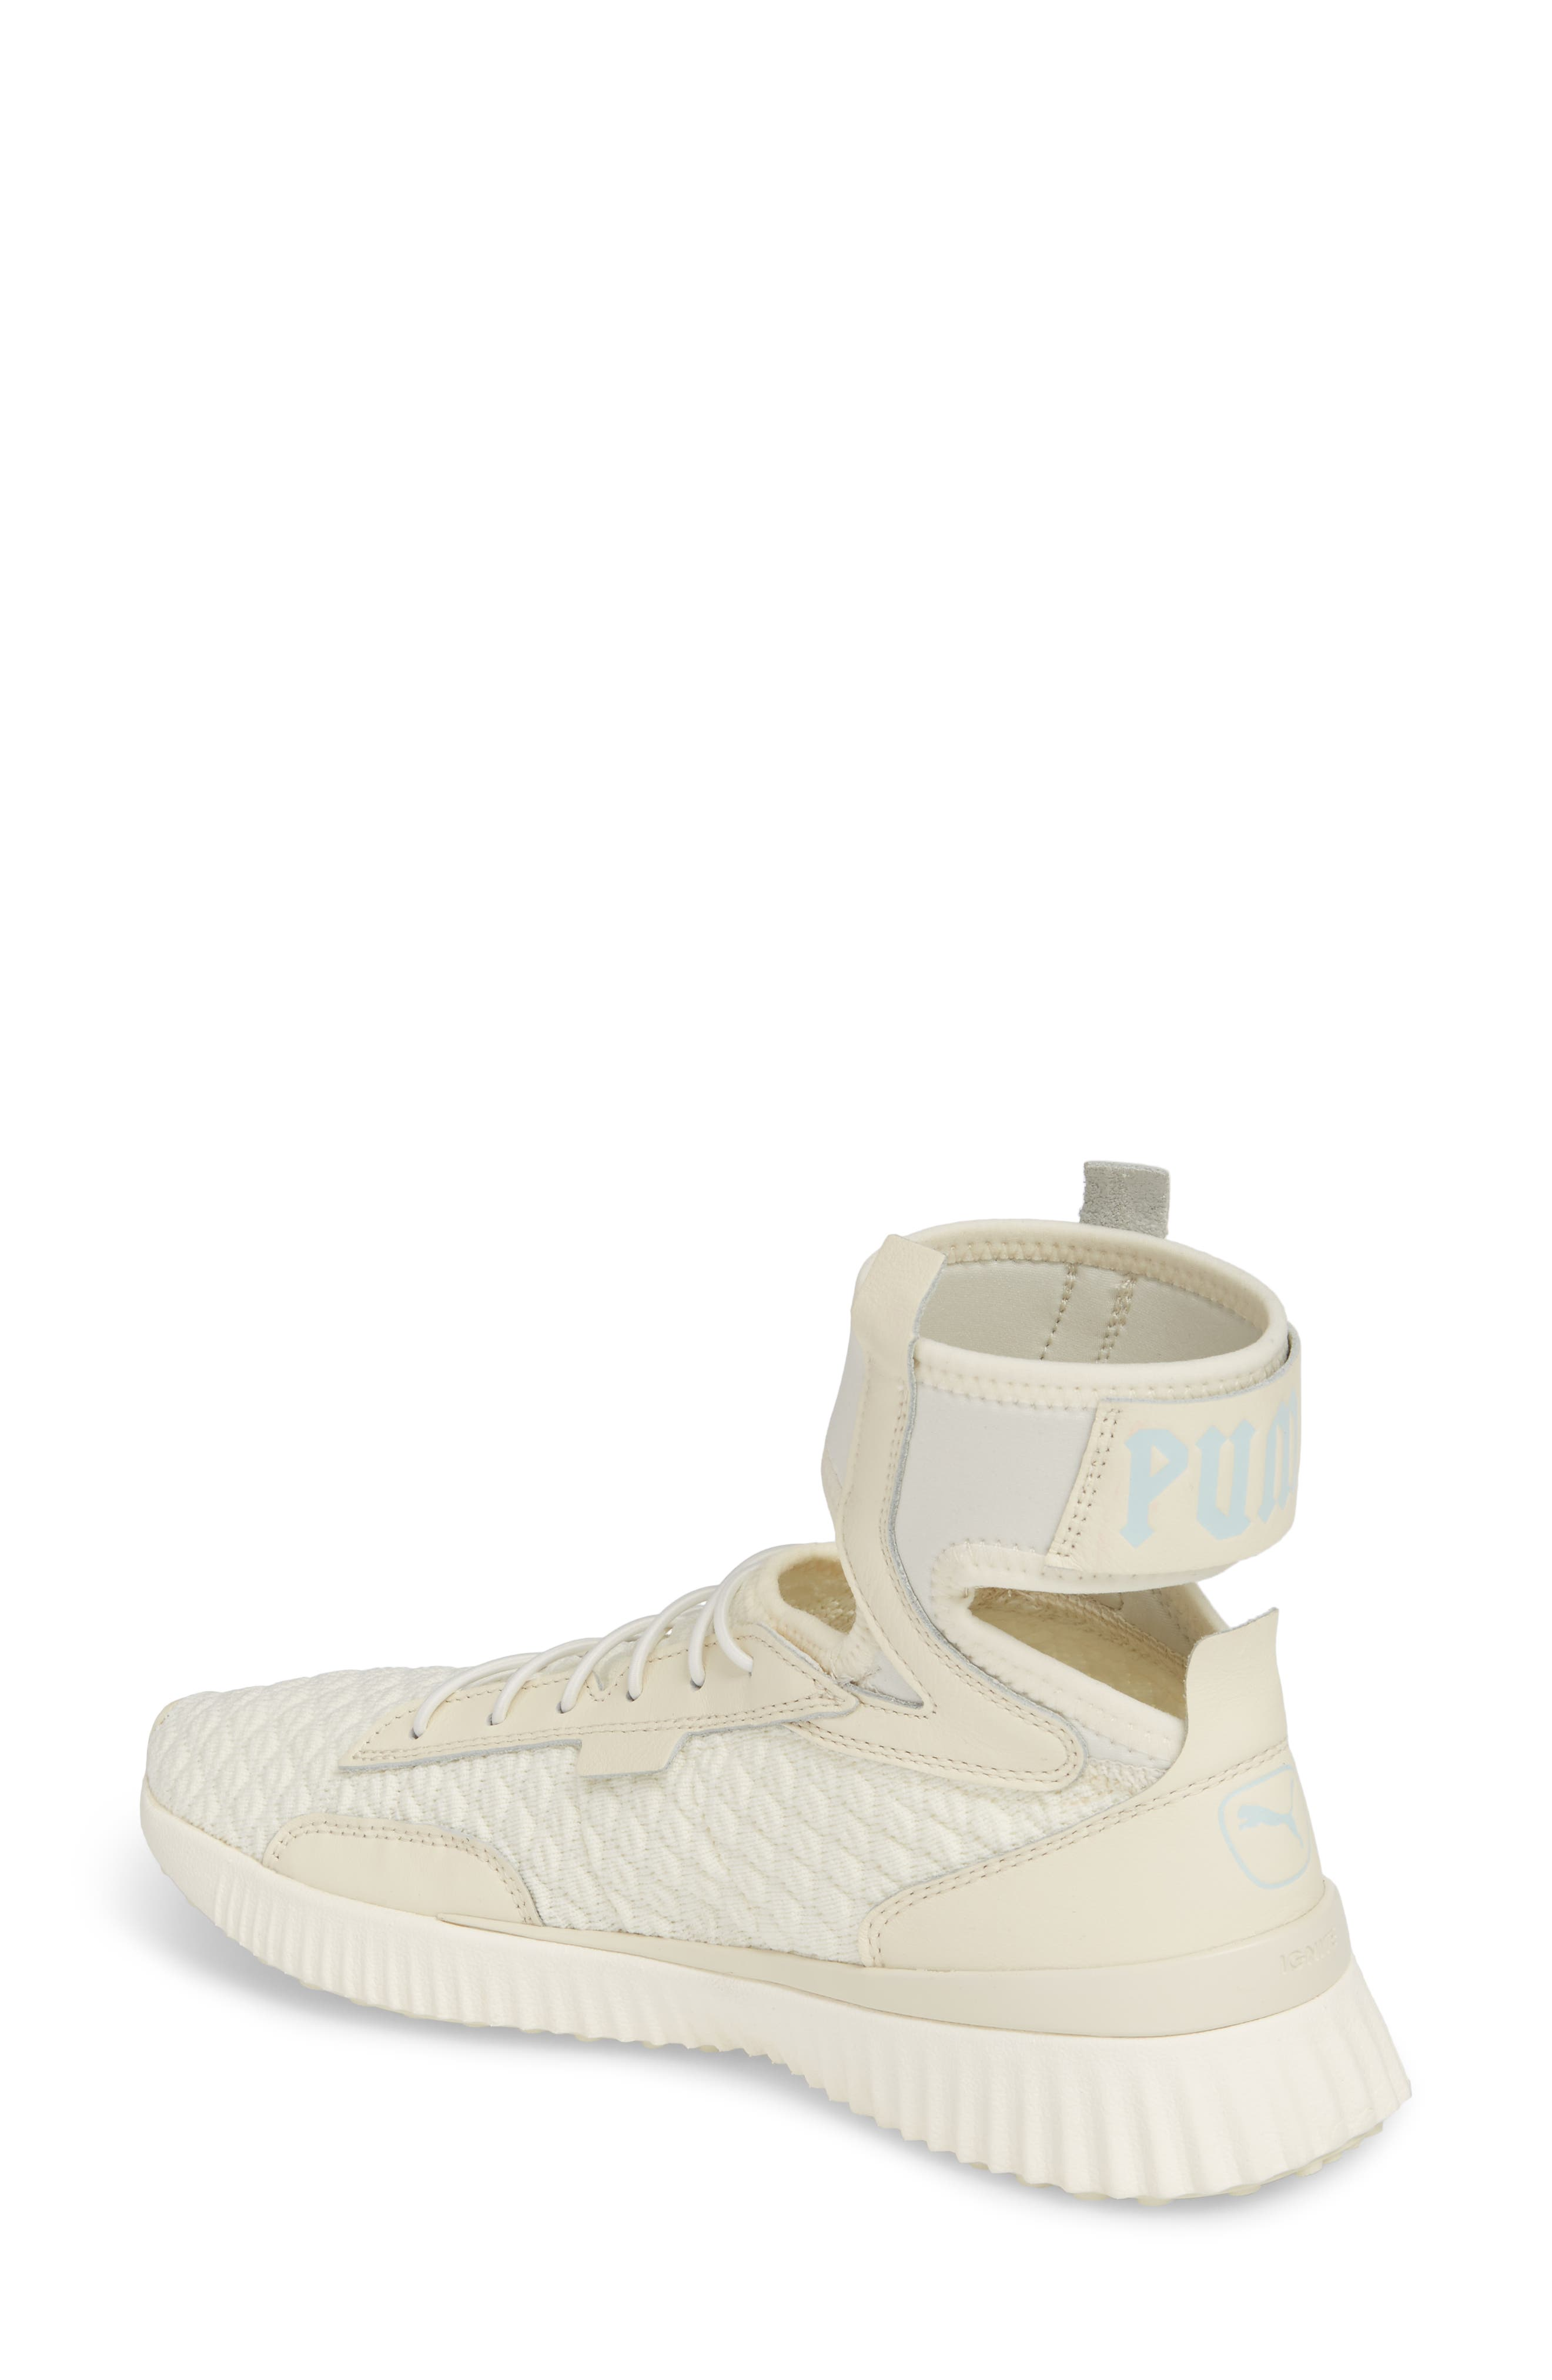 FENTY PUMA by Rihanna High Top Sneaker,                             Alternate thumbnail 2, color,                             Vanilla Ice/ Sterling Blue